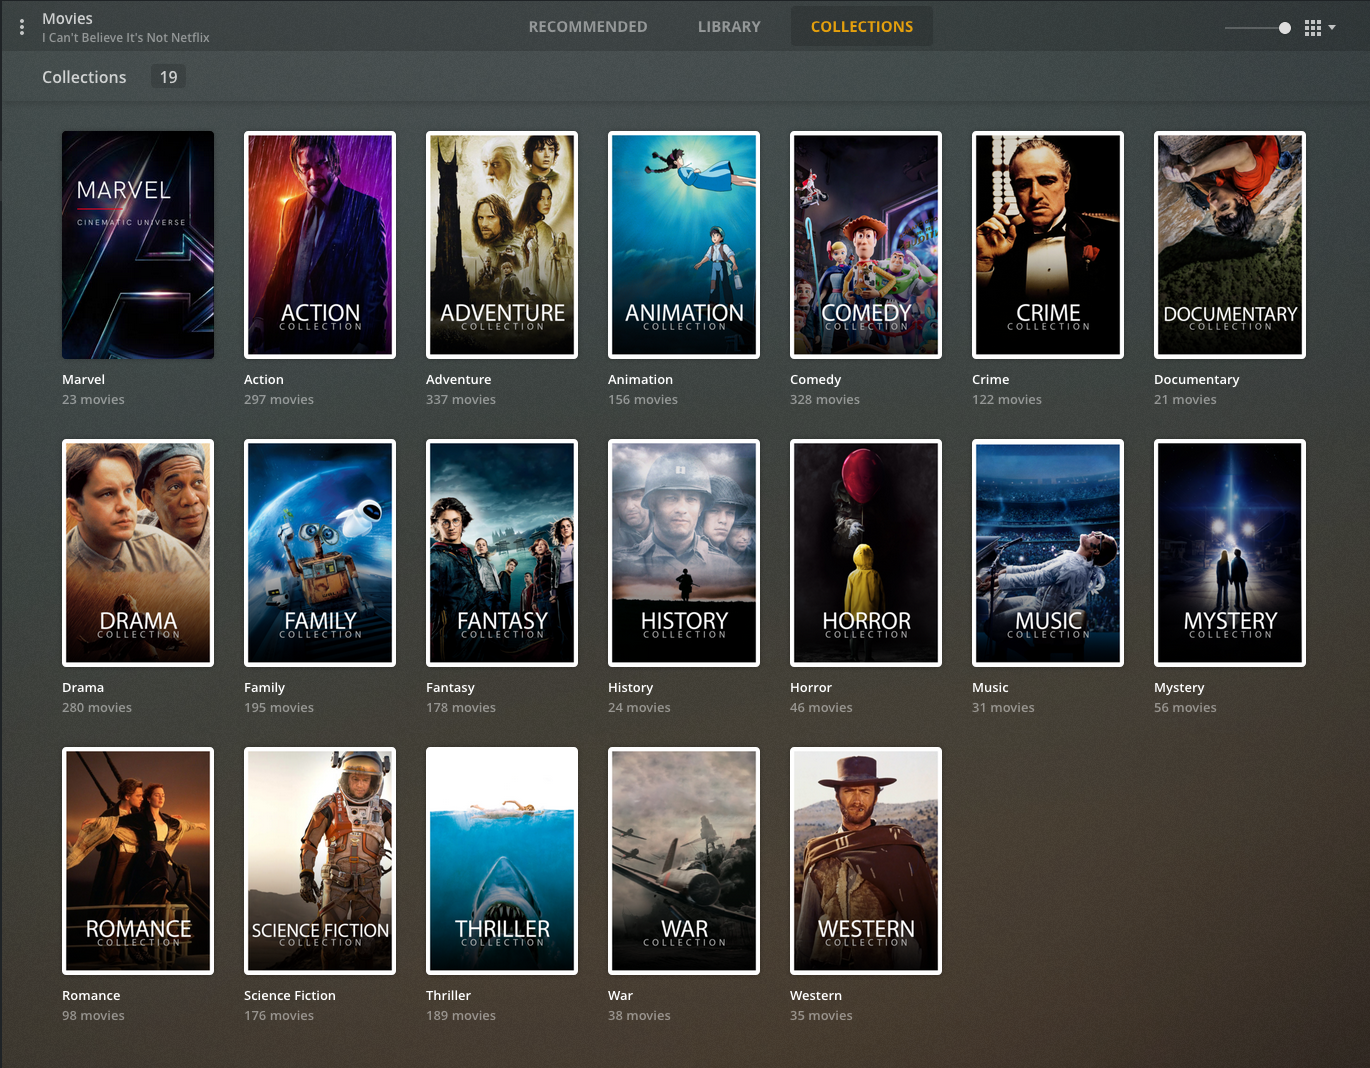 Movie Collections